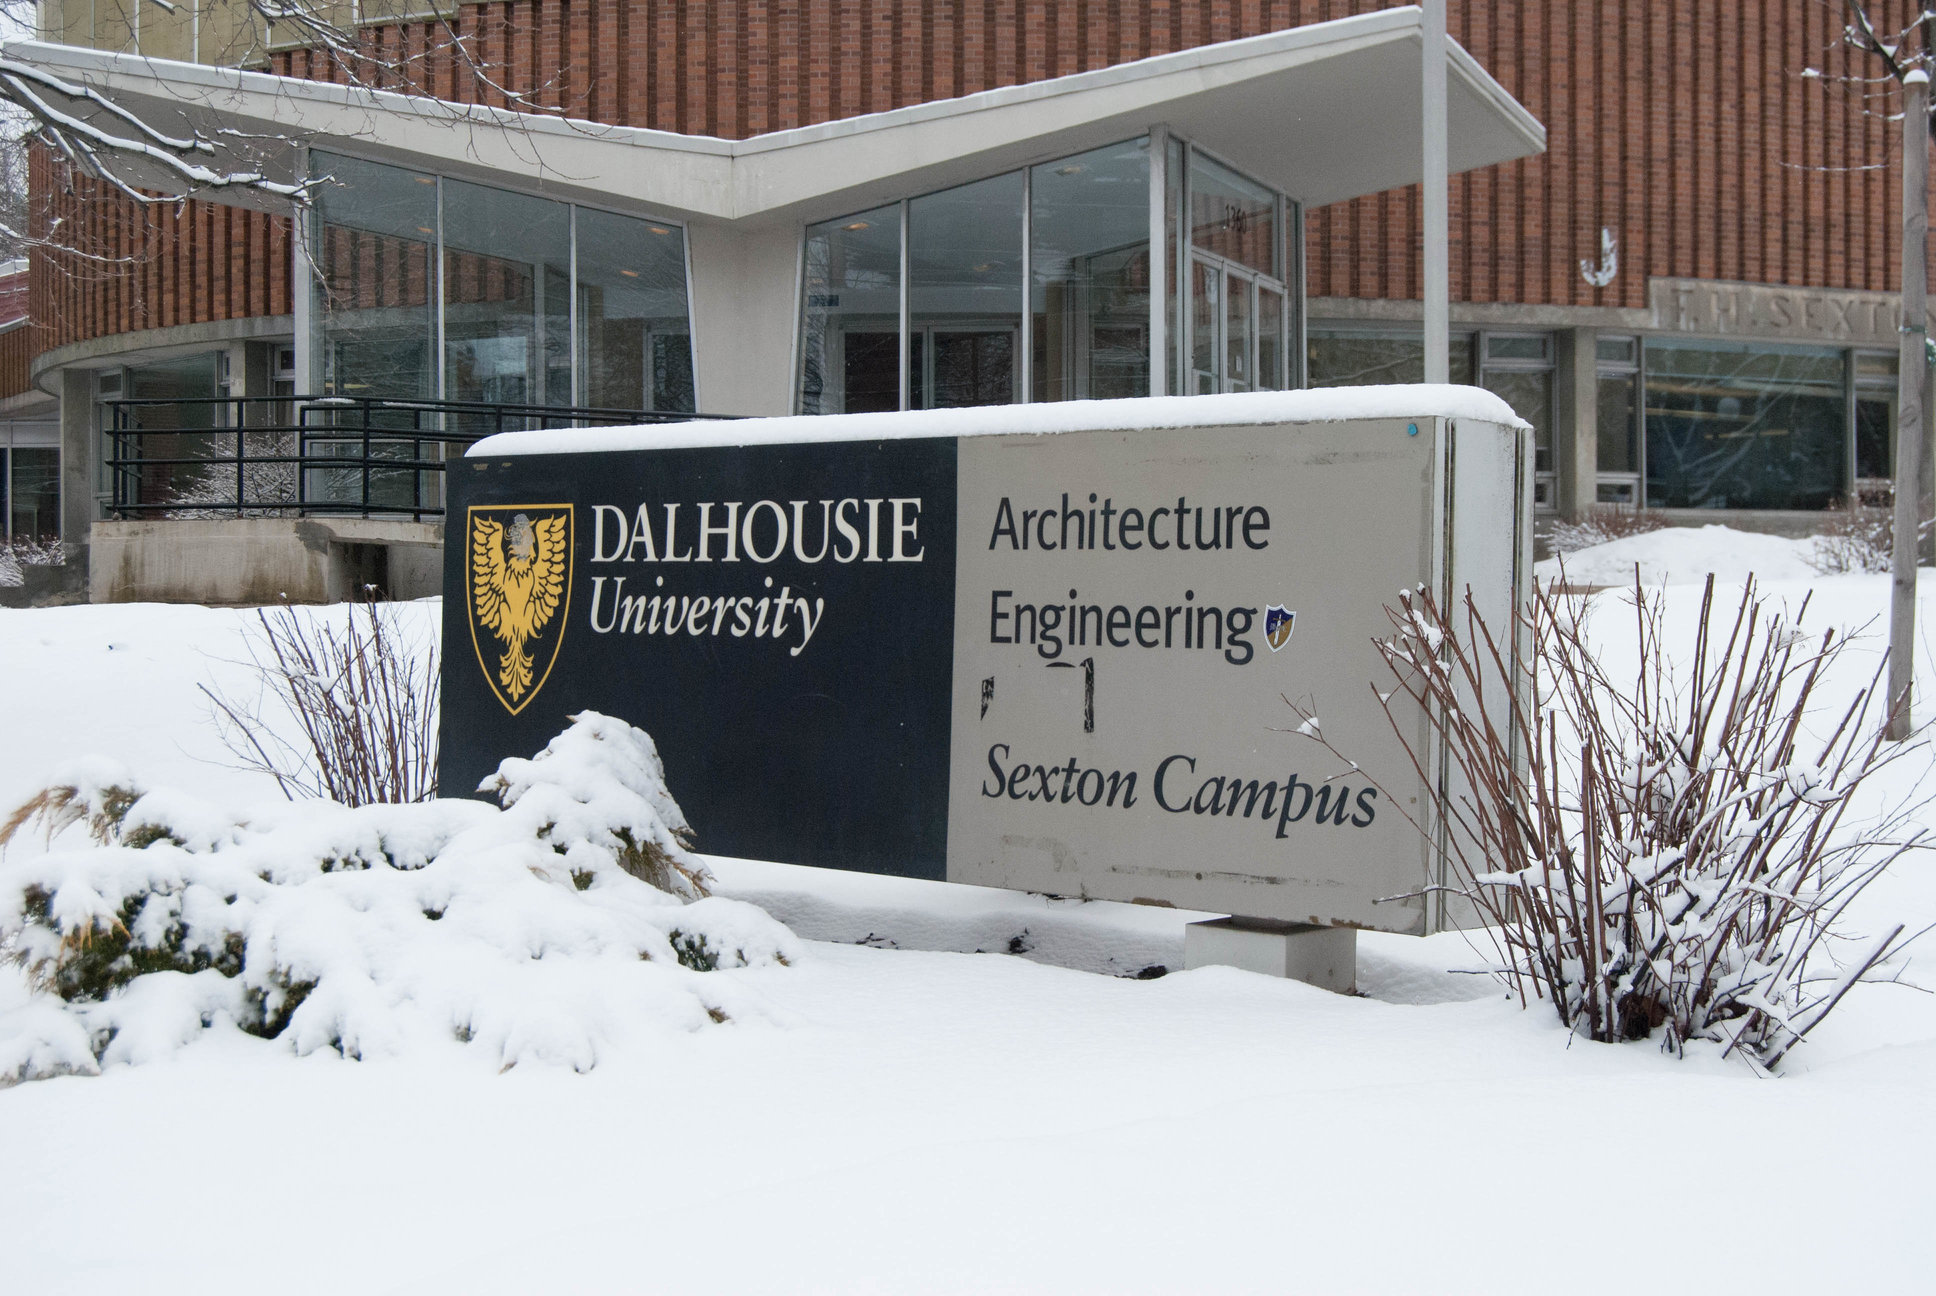 DUES is holding events to let engineering students voice their concerns.